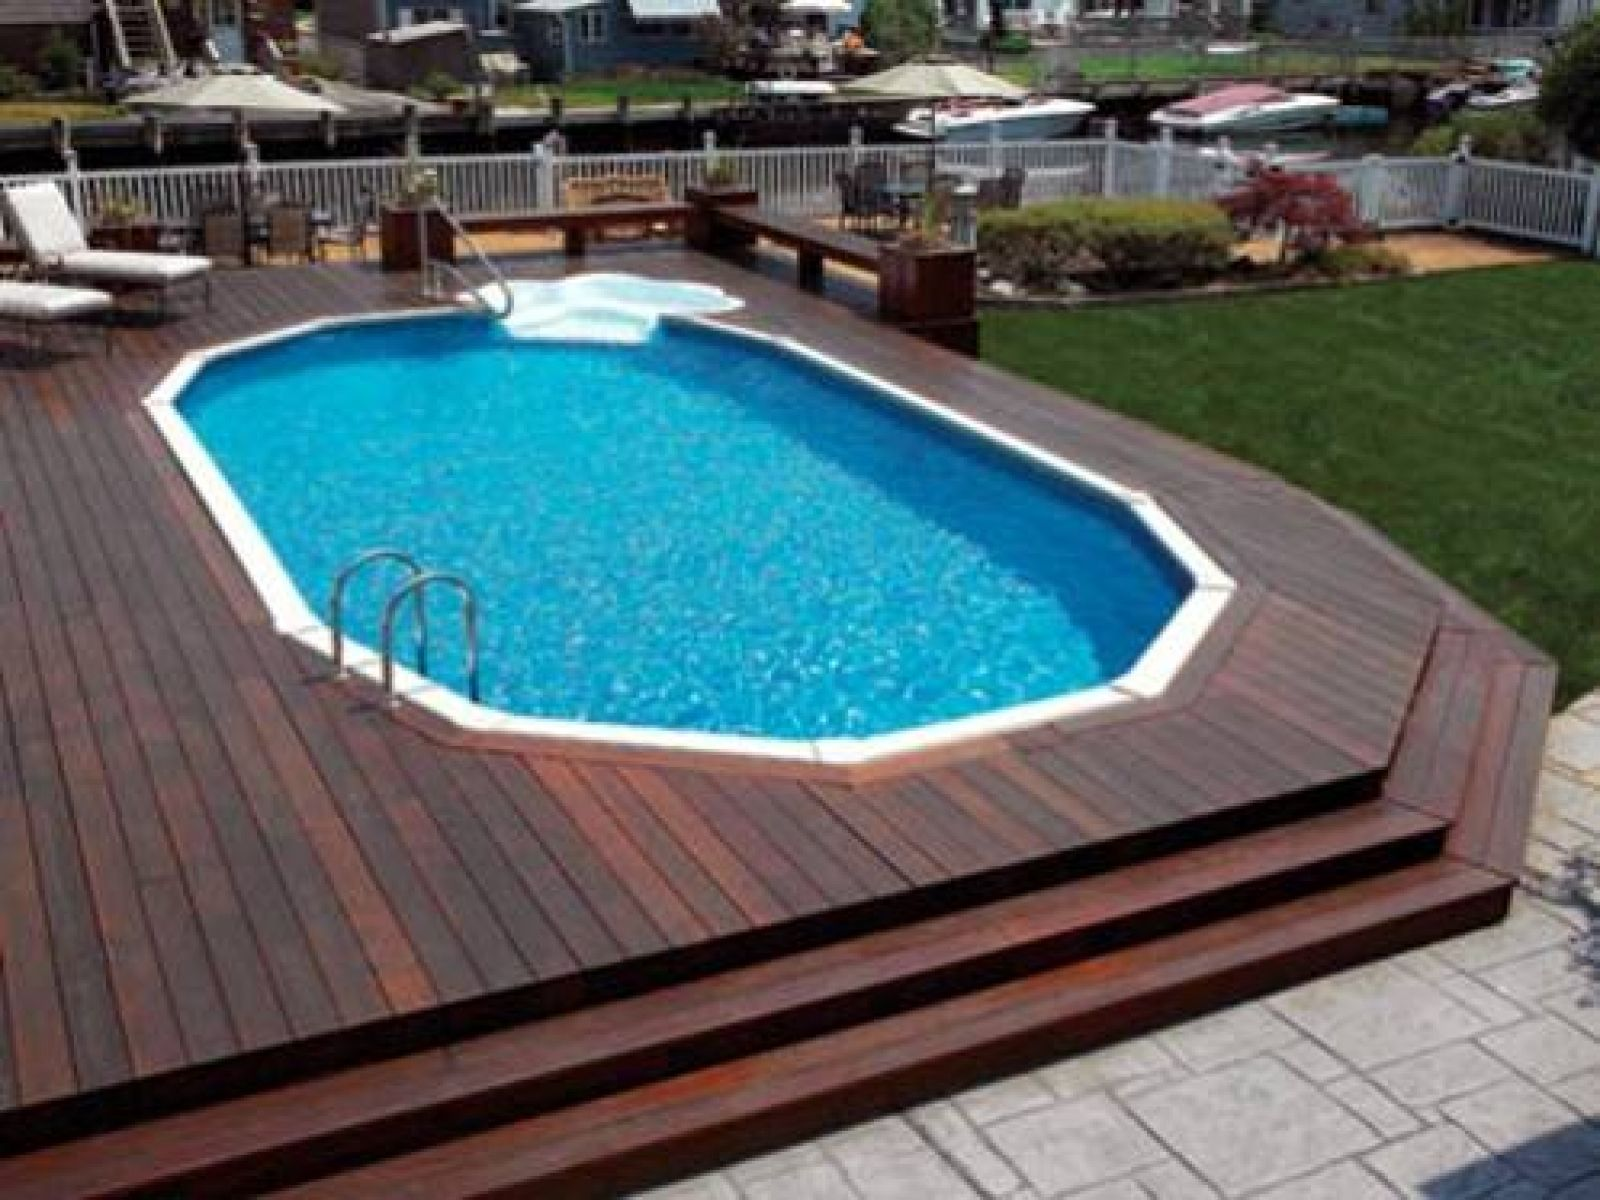 Decor Tips Amusing Backyard Landscape With Wood Decks And Patio Pavers Plus Above Ground Pool Ideas Backyard Pool Best Above Ground Pool Pool Deck Plans